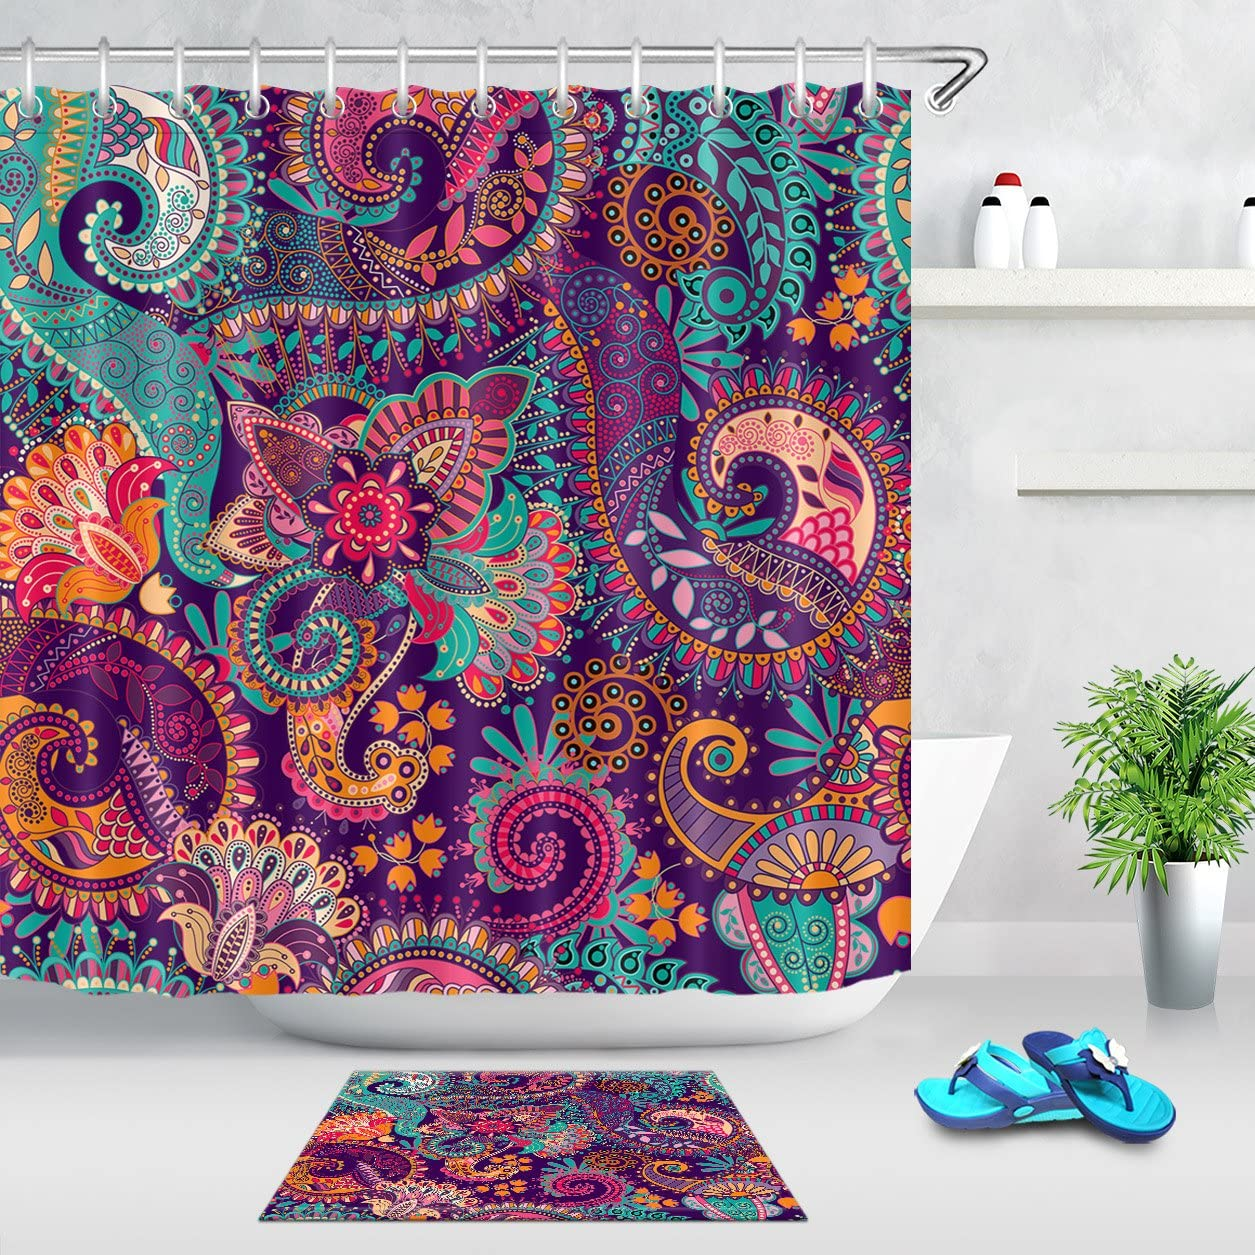 Paisley Fabric Shower Curtain Multi-Colors On White Very Pretty /& Colorful NEW